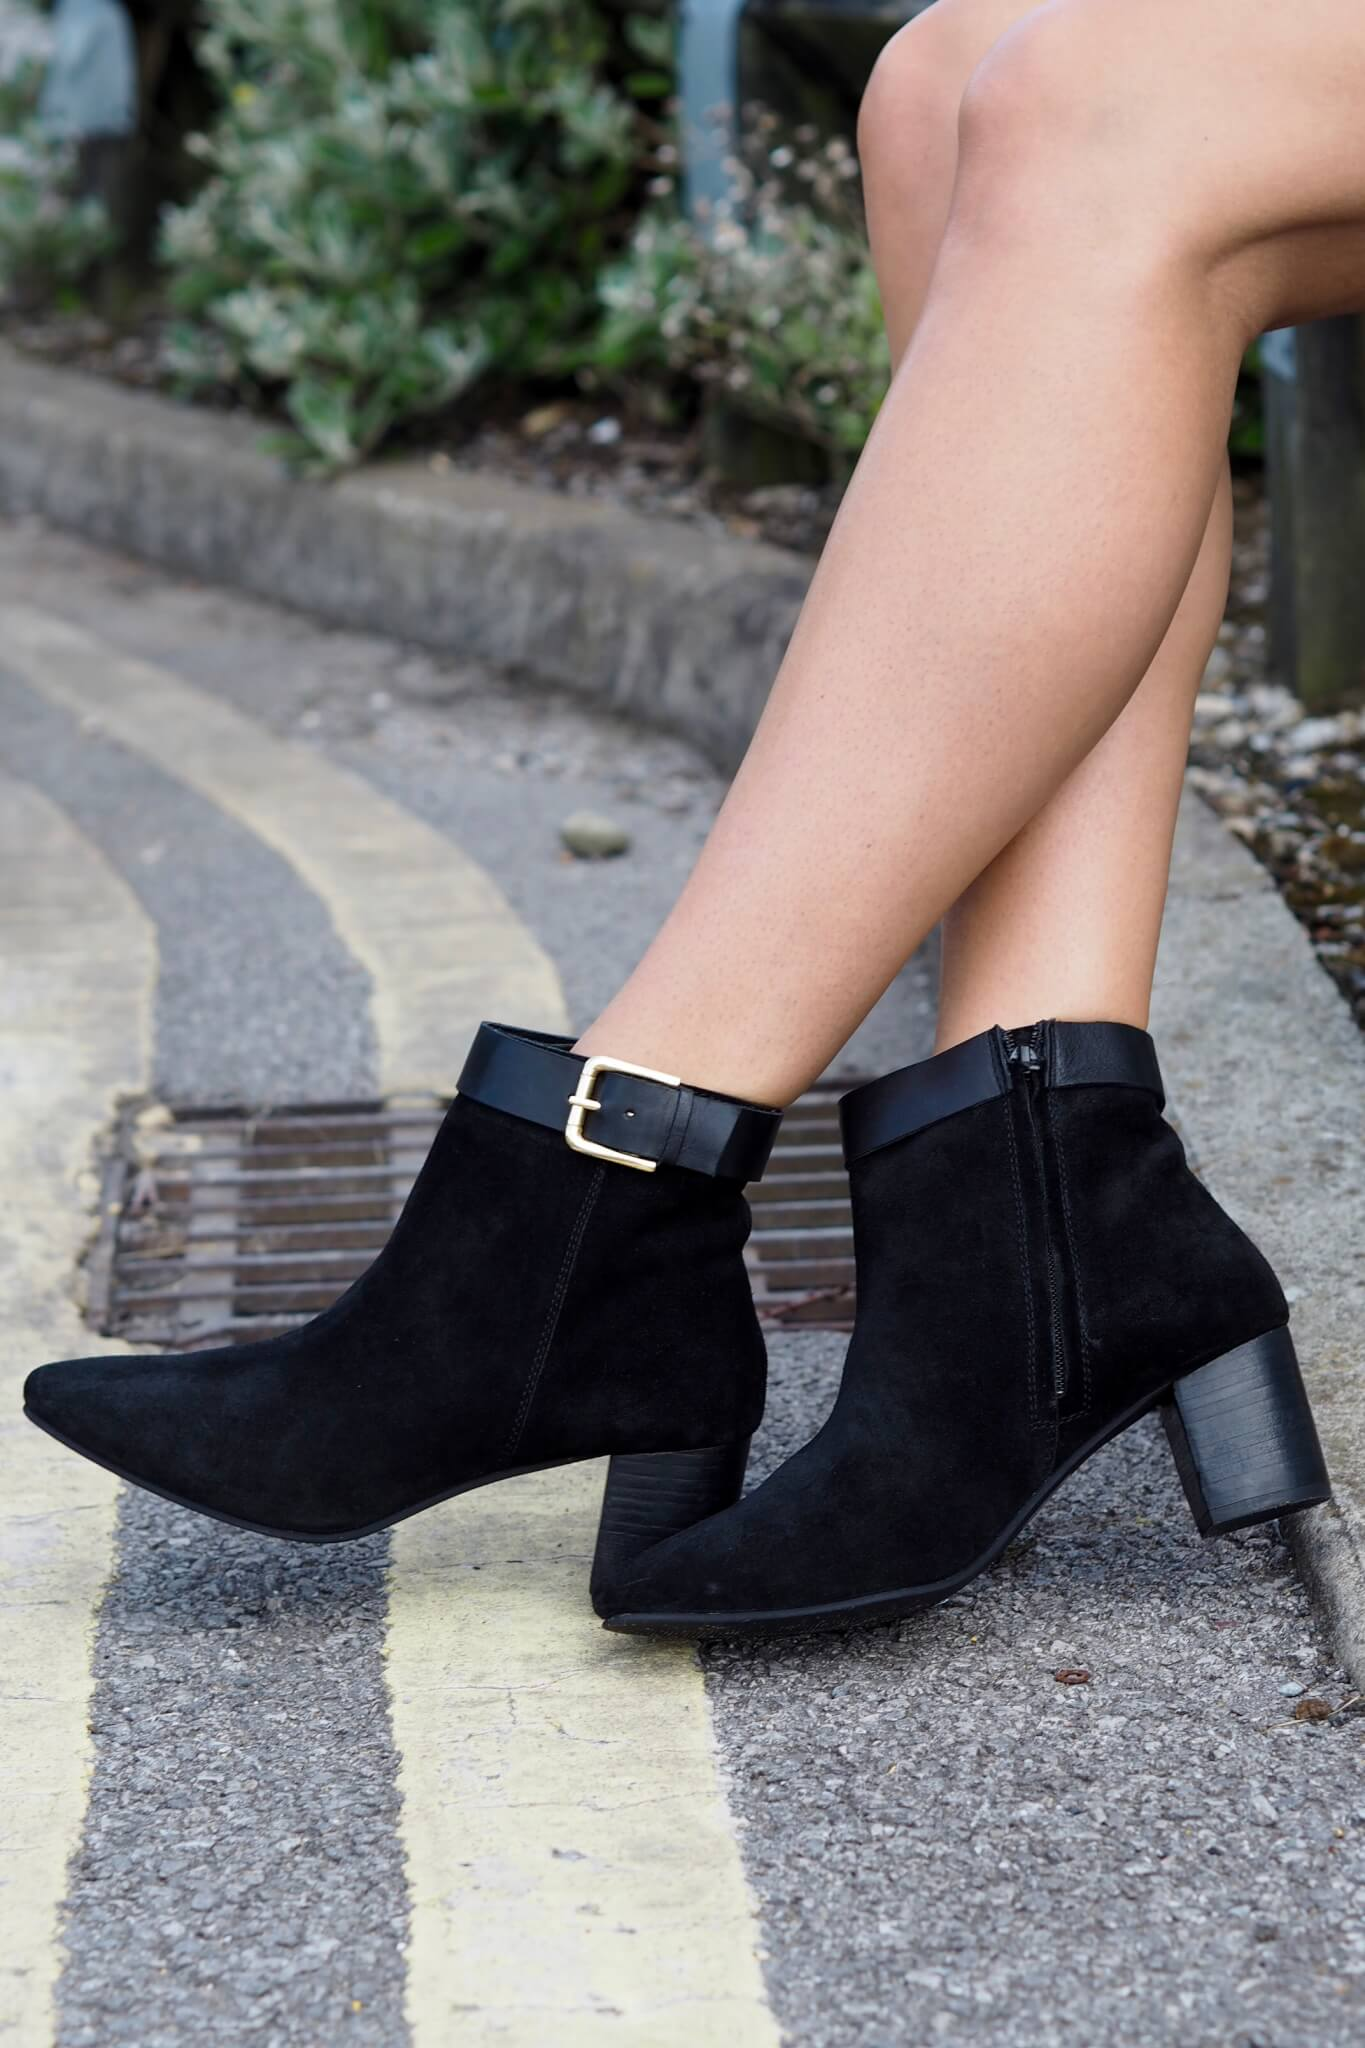 Transitional Ankle Boots from Summer to Fall / Autumn